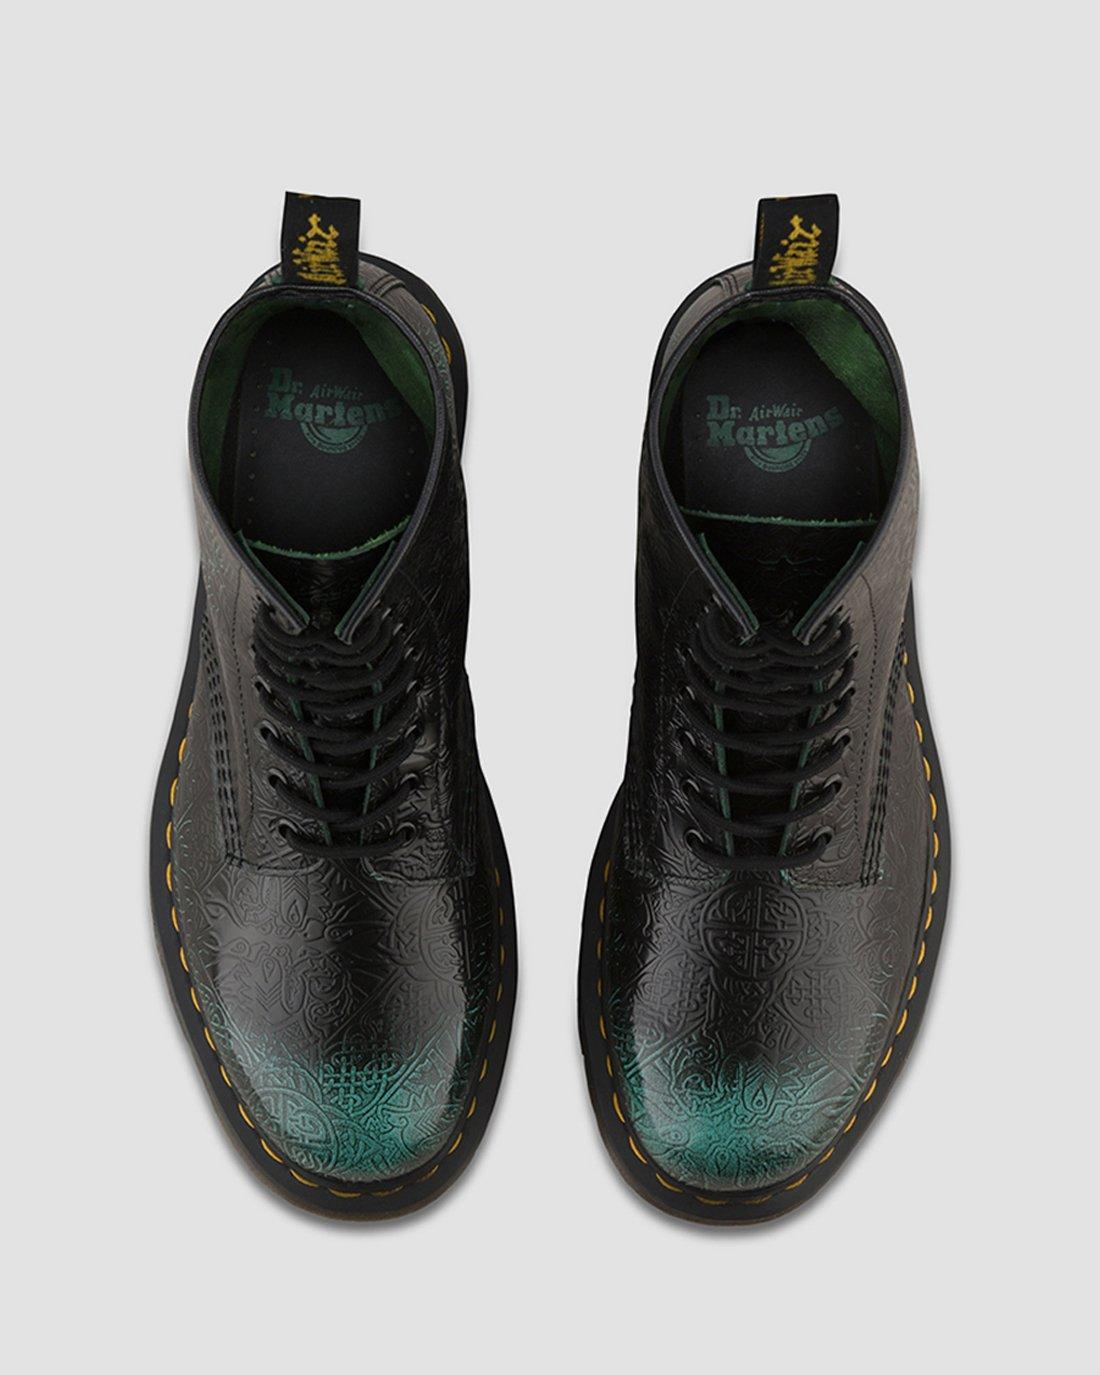 Dr. Martens: Limited edition St. Patrick's Day 1460 | Milled